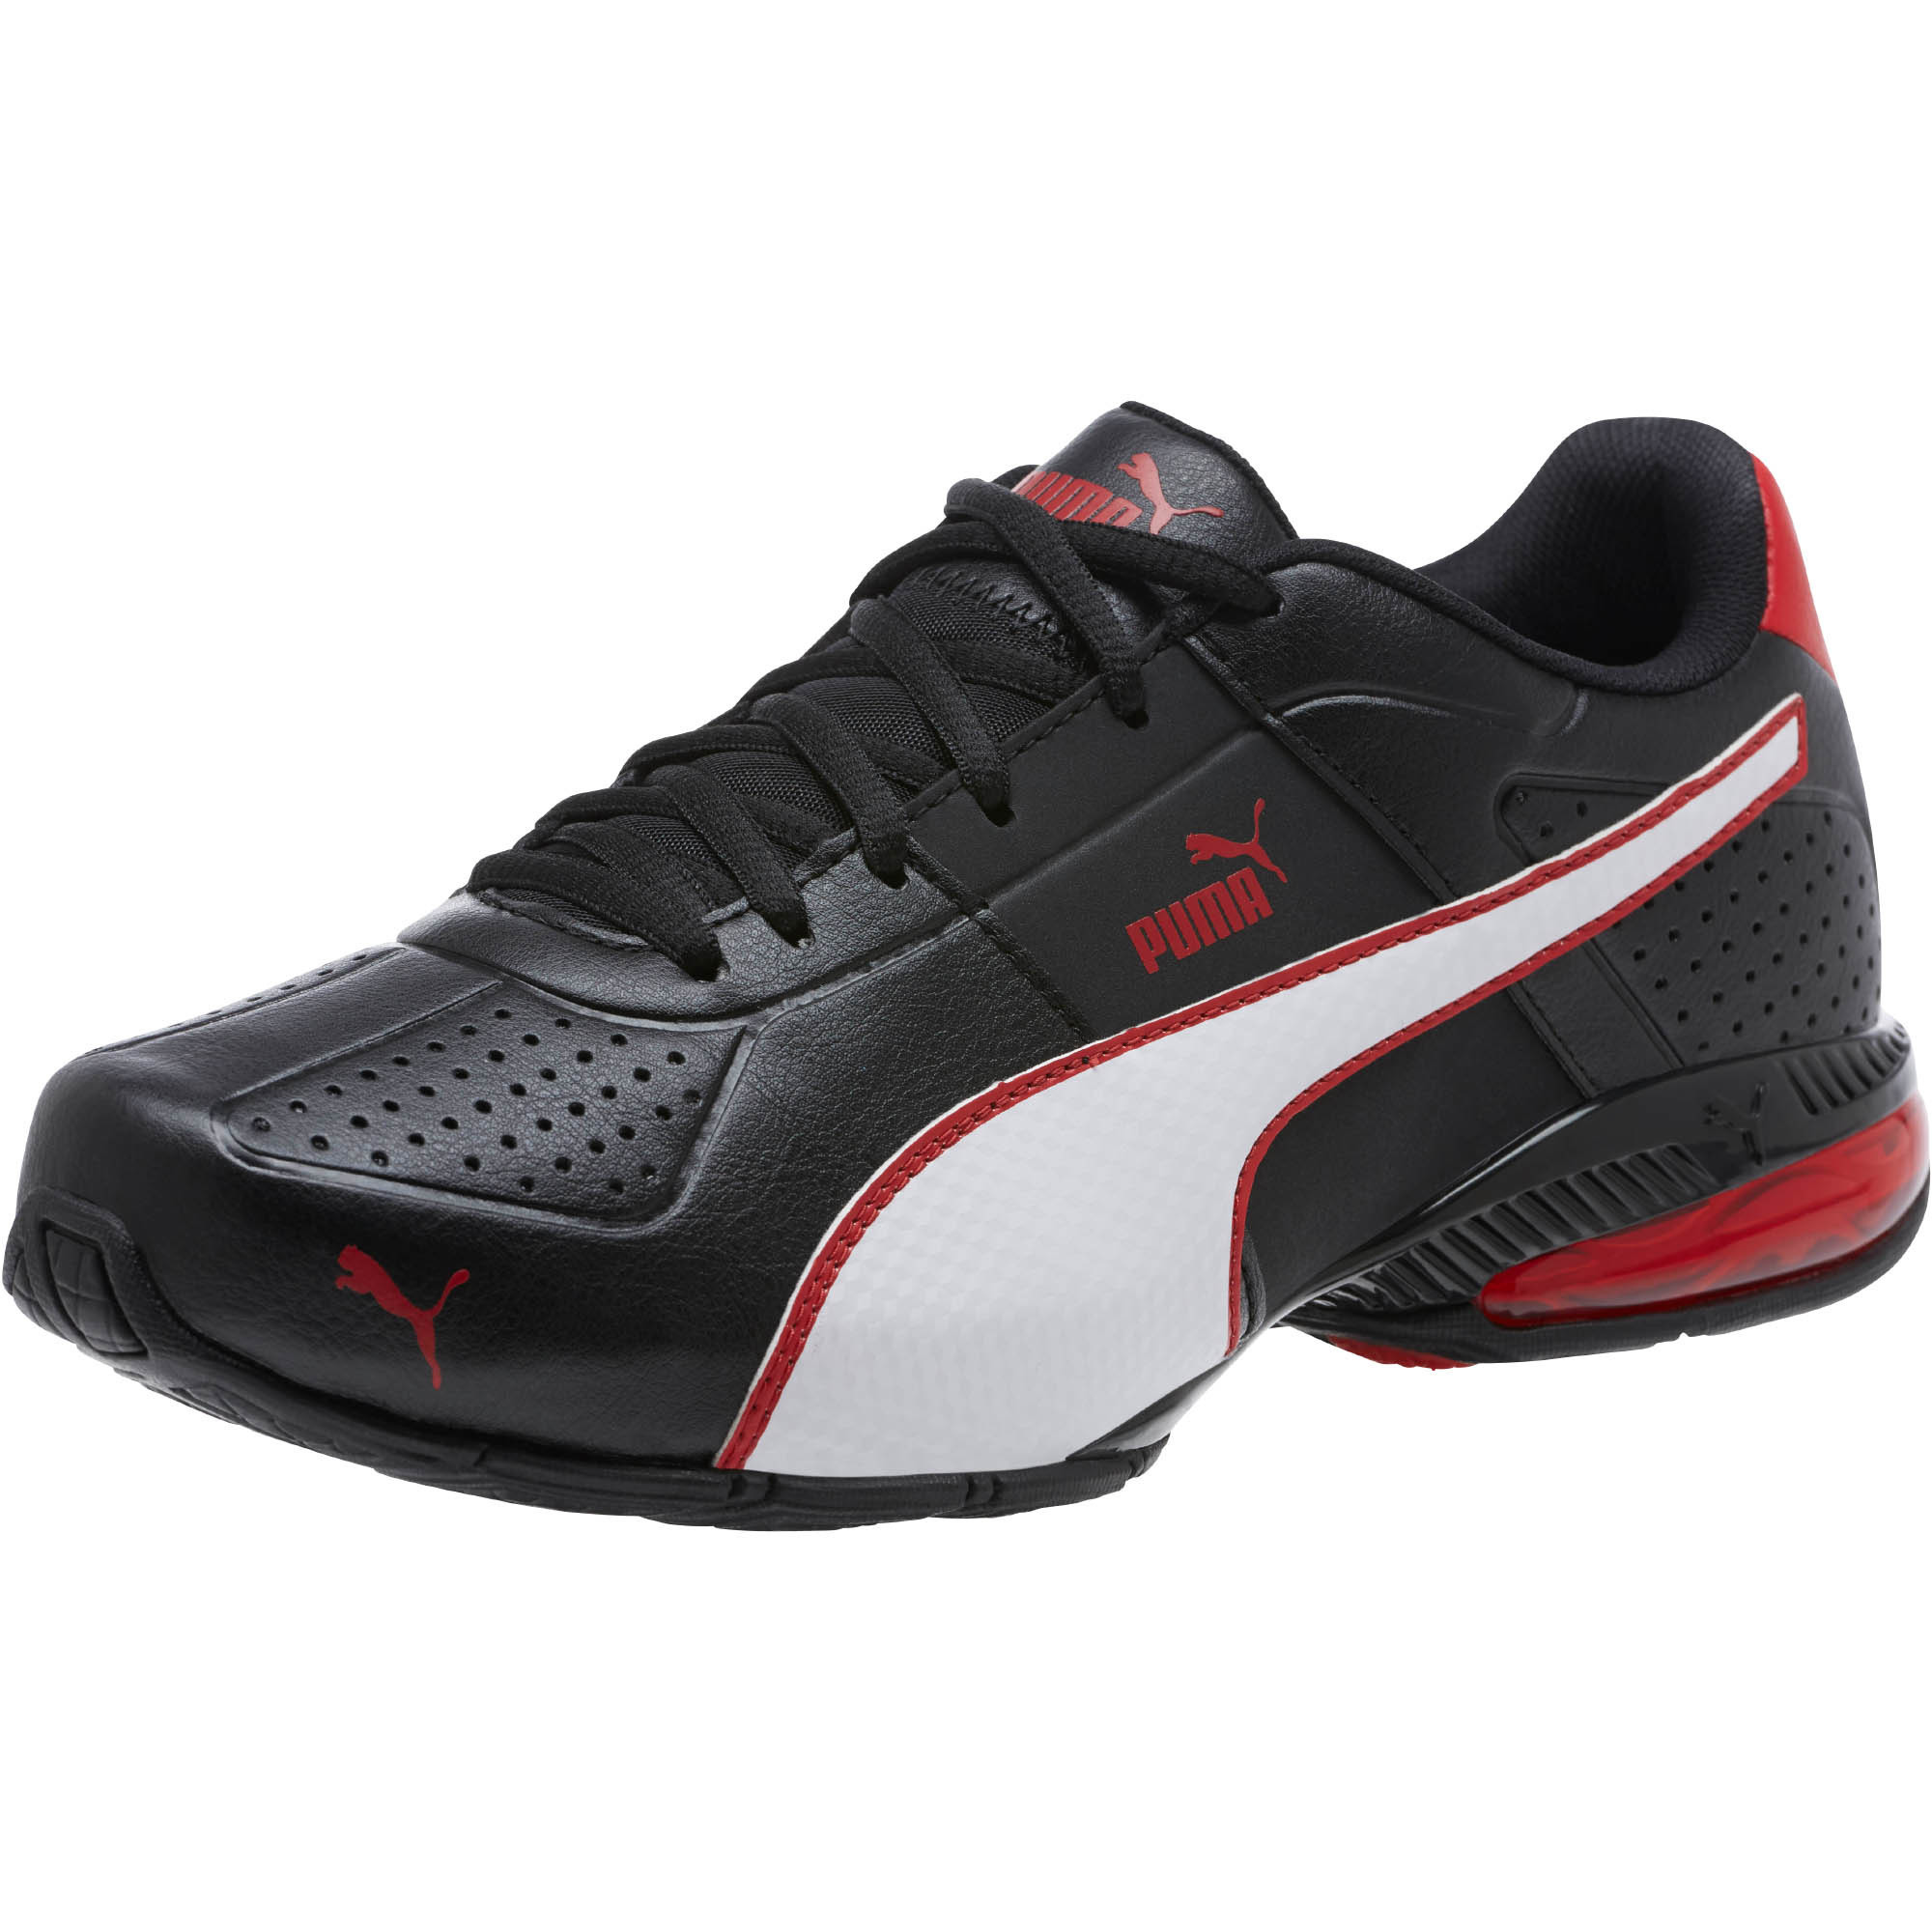 PUMA-Men-039-s-CELL-Surin-2-FM-Running-Shoes thumbnail 15